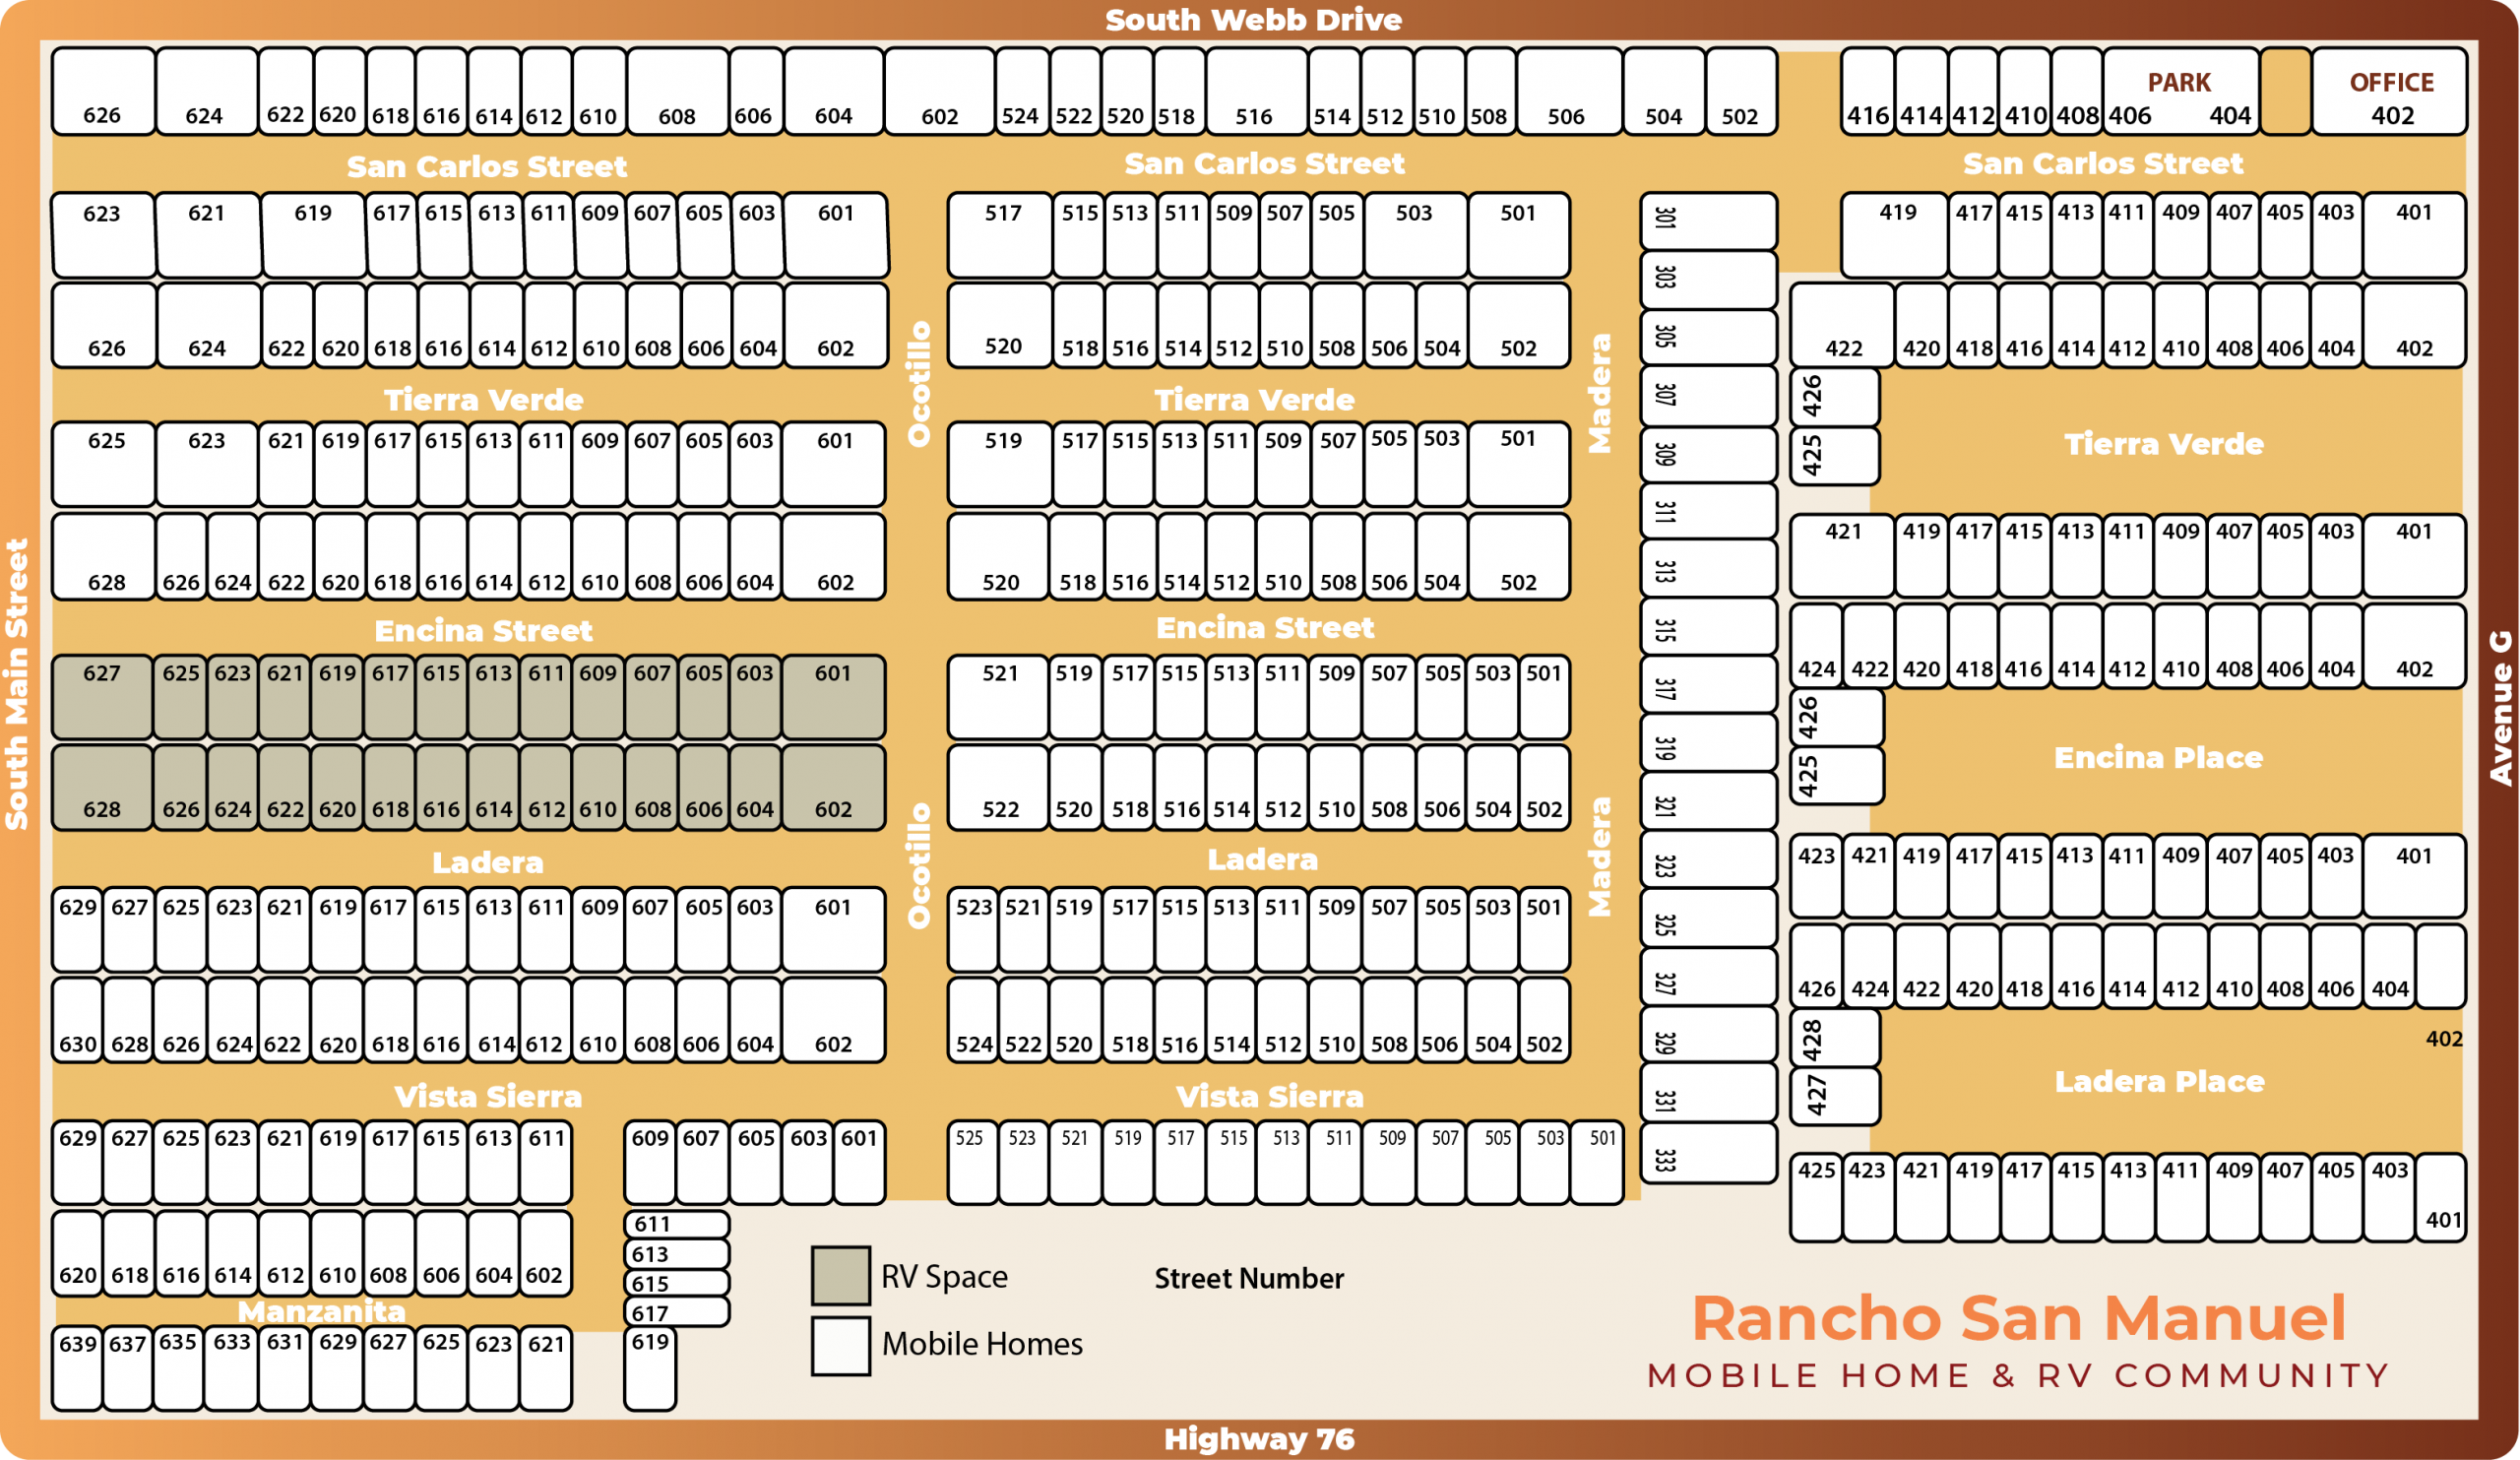 Park map of Rancho San Manuel Mobile Home and RV Community with the following street addresses: South Webb Drive , San Carlos Street , South Main Street , Avenue C , Highway 76 , Tierra Verde , Encina Street , Ladera , Vista Sierra , Manzanita , Ocotillo , Madera , Ladera Place , and the office location .